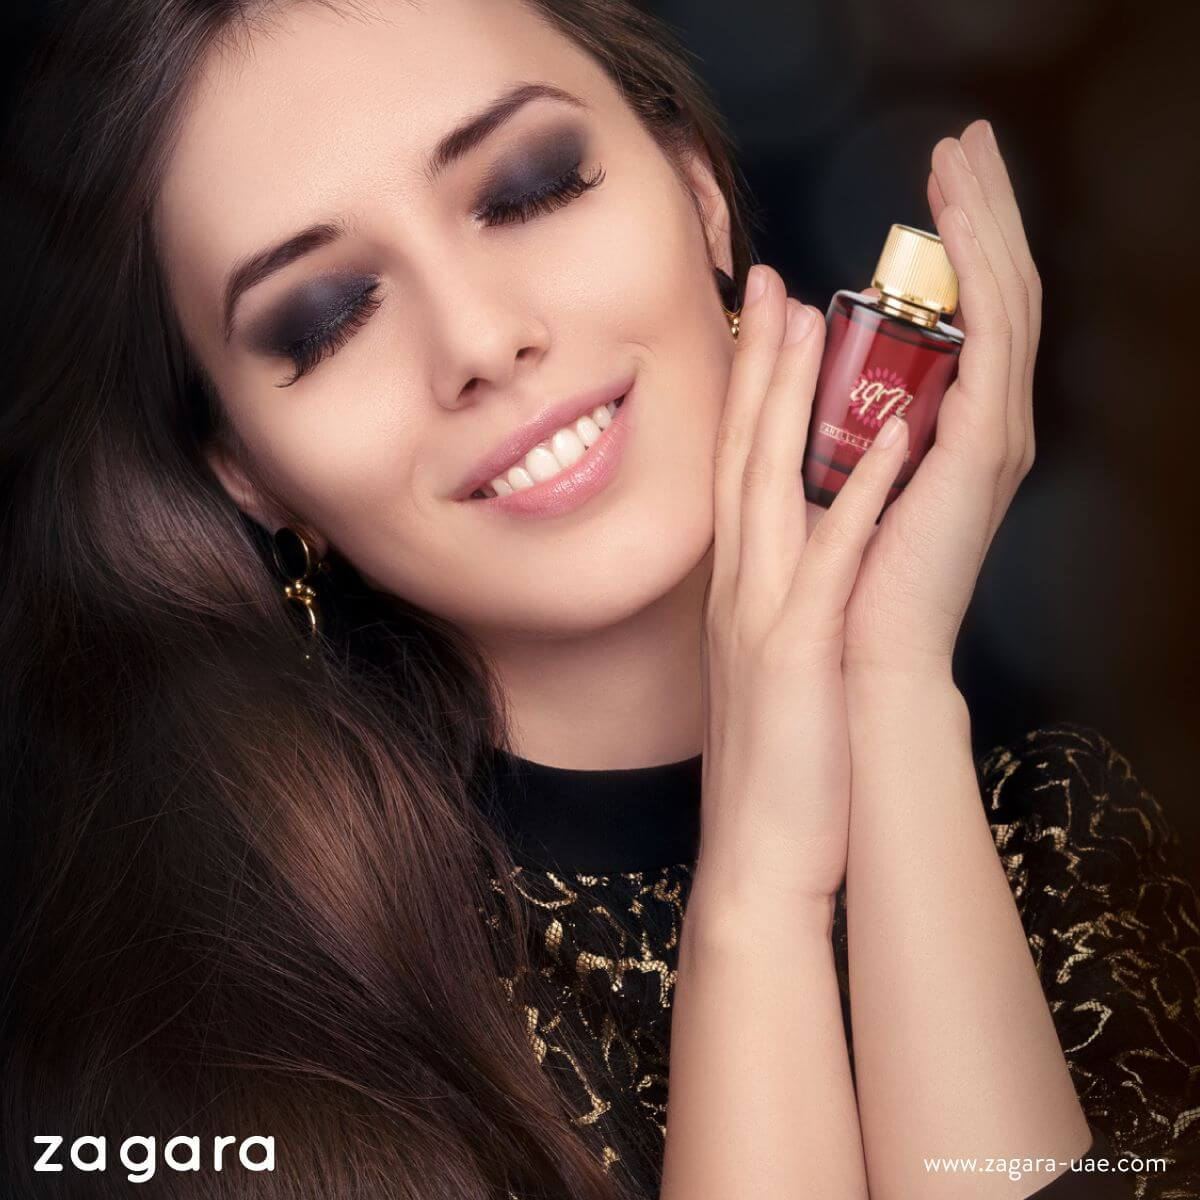 ZAGARA_WEBSITE